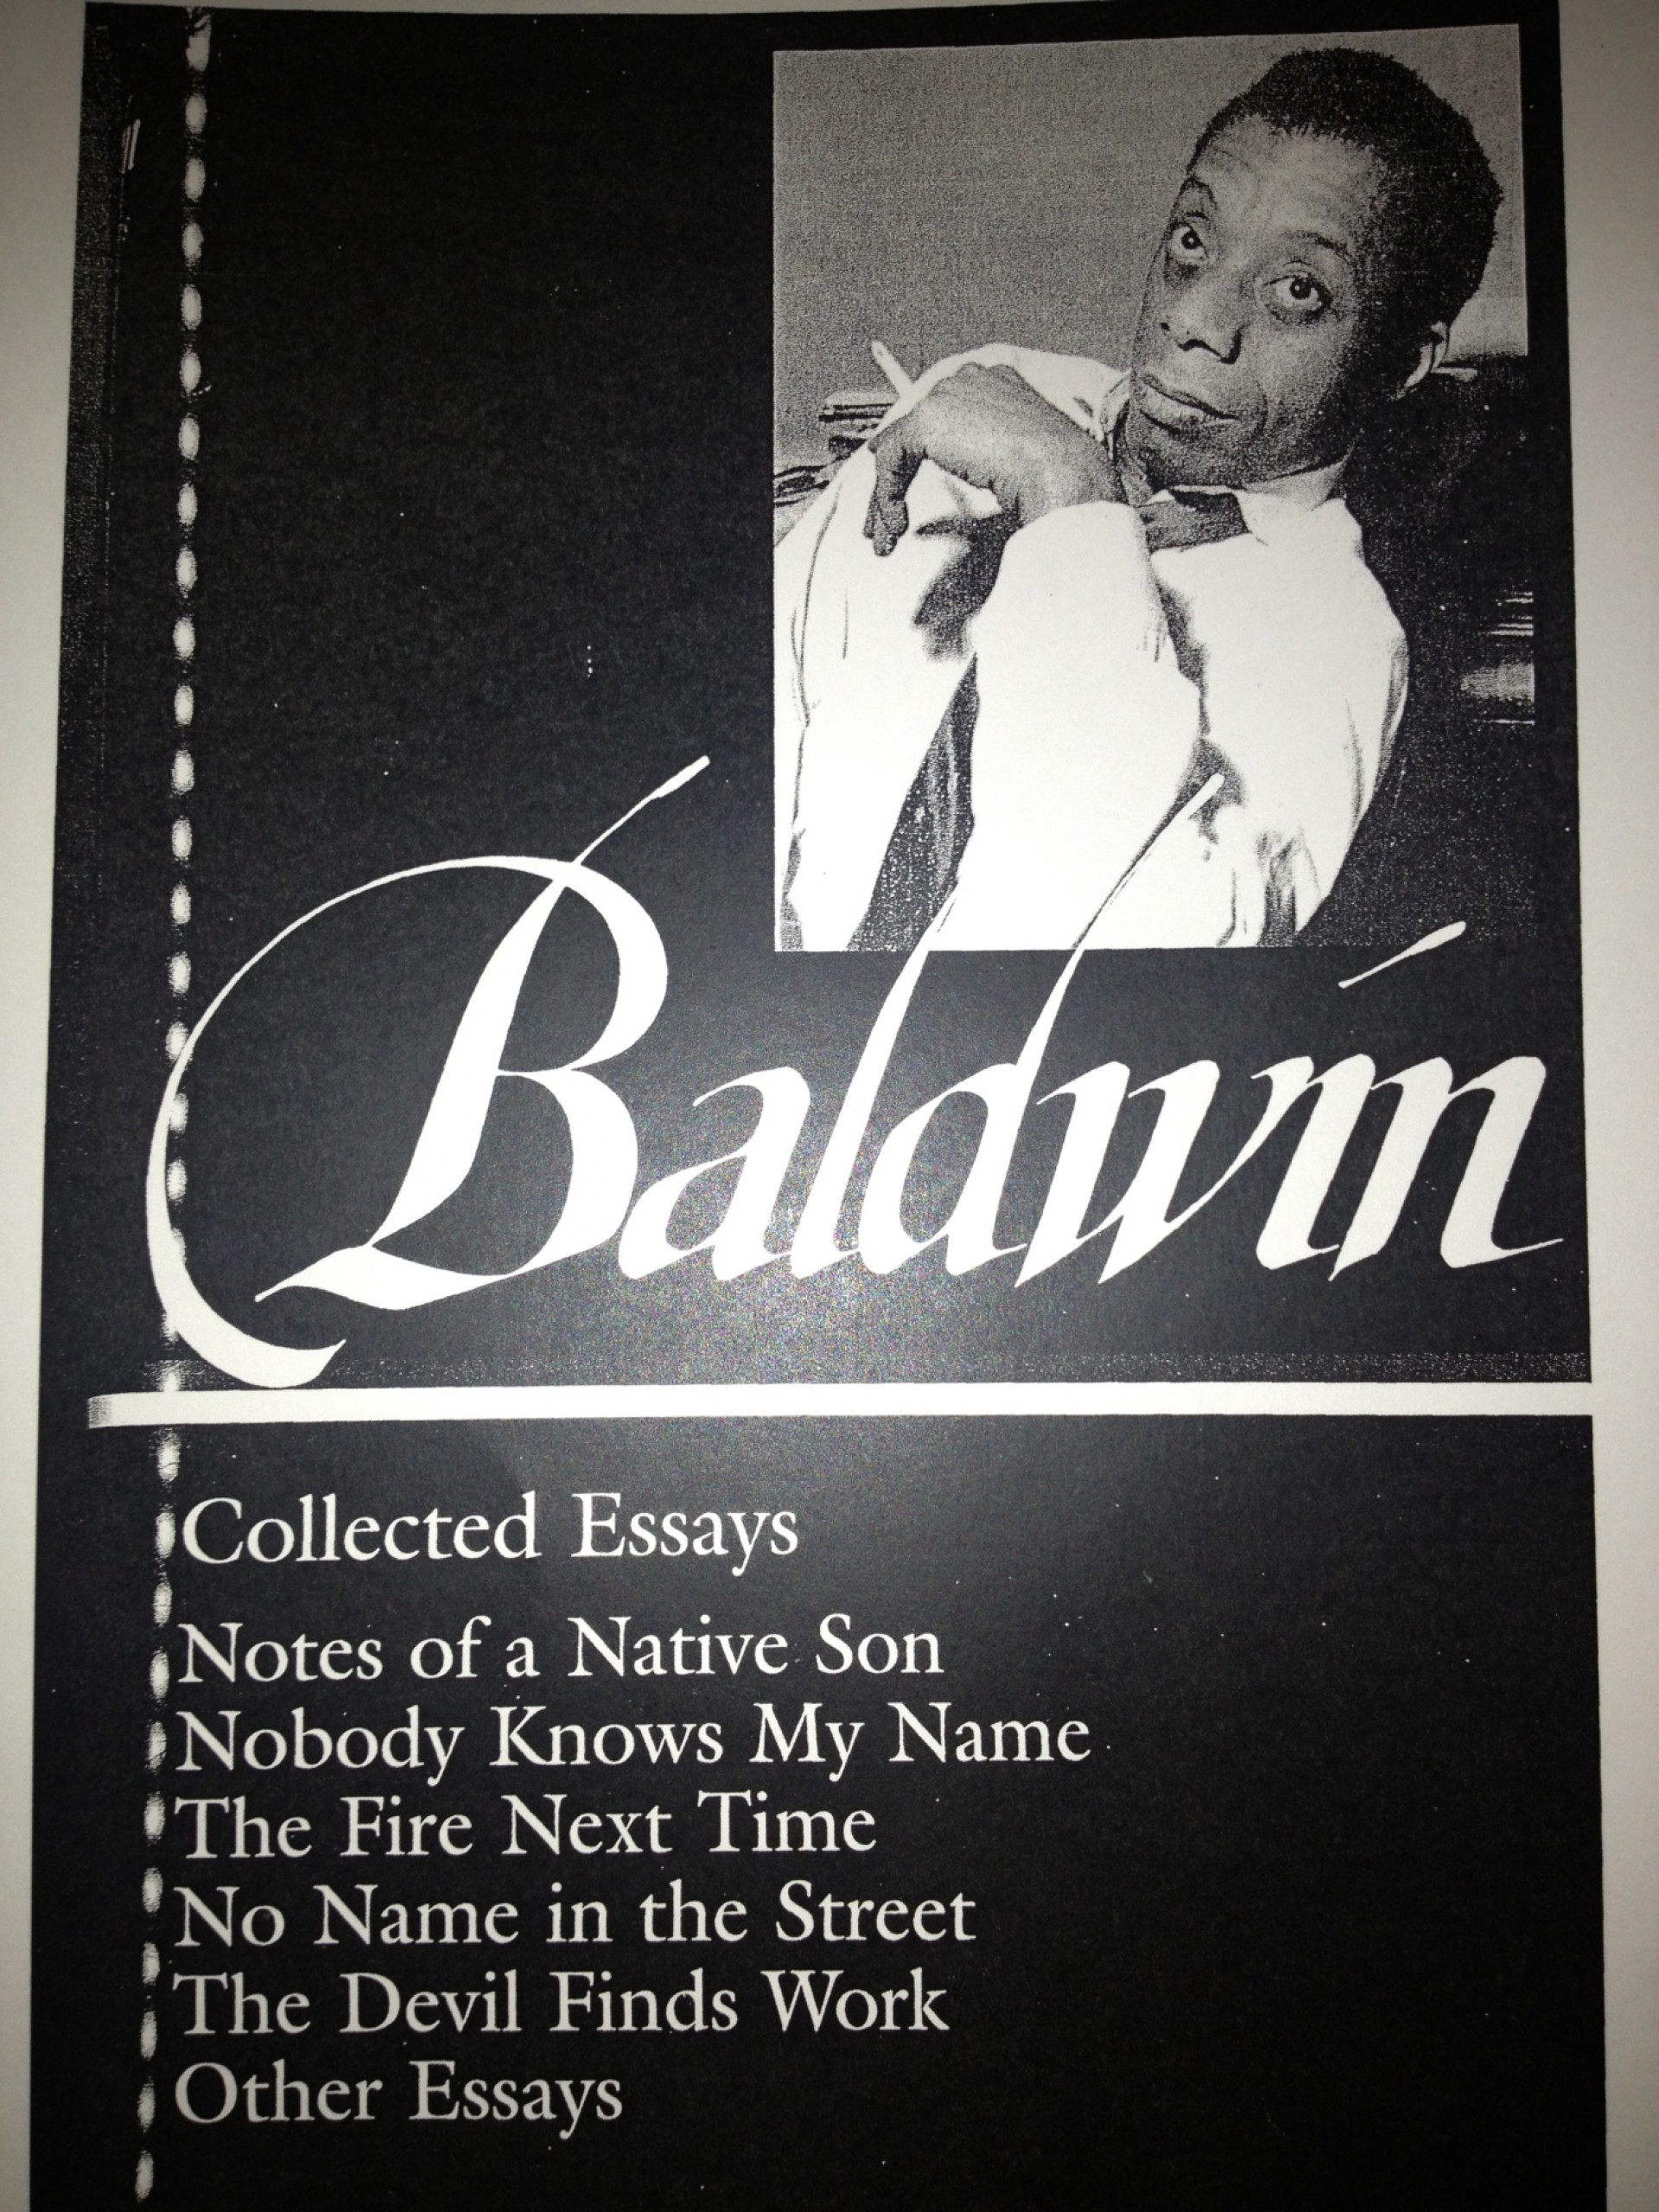 001 Img 4408w1400h9999 James Baldwin Collected Essays Essay Wondrous Google Books Pdf Table Of Contents 1920